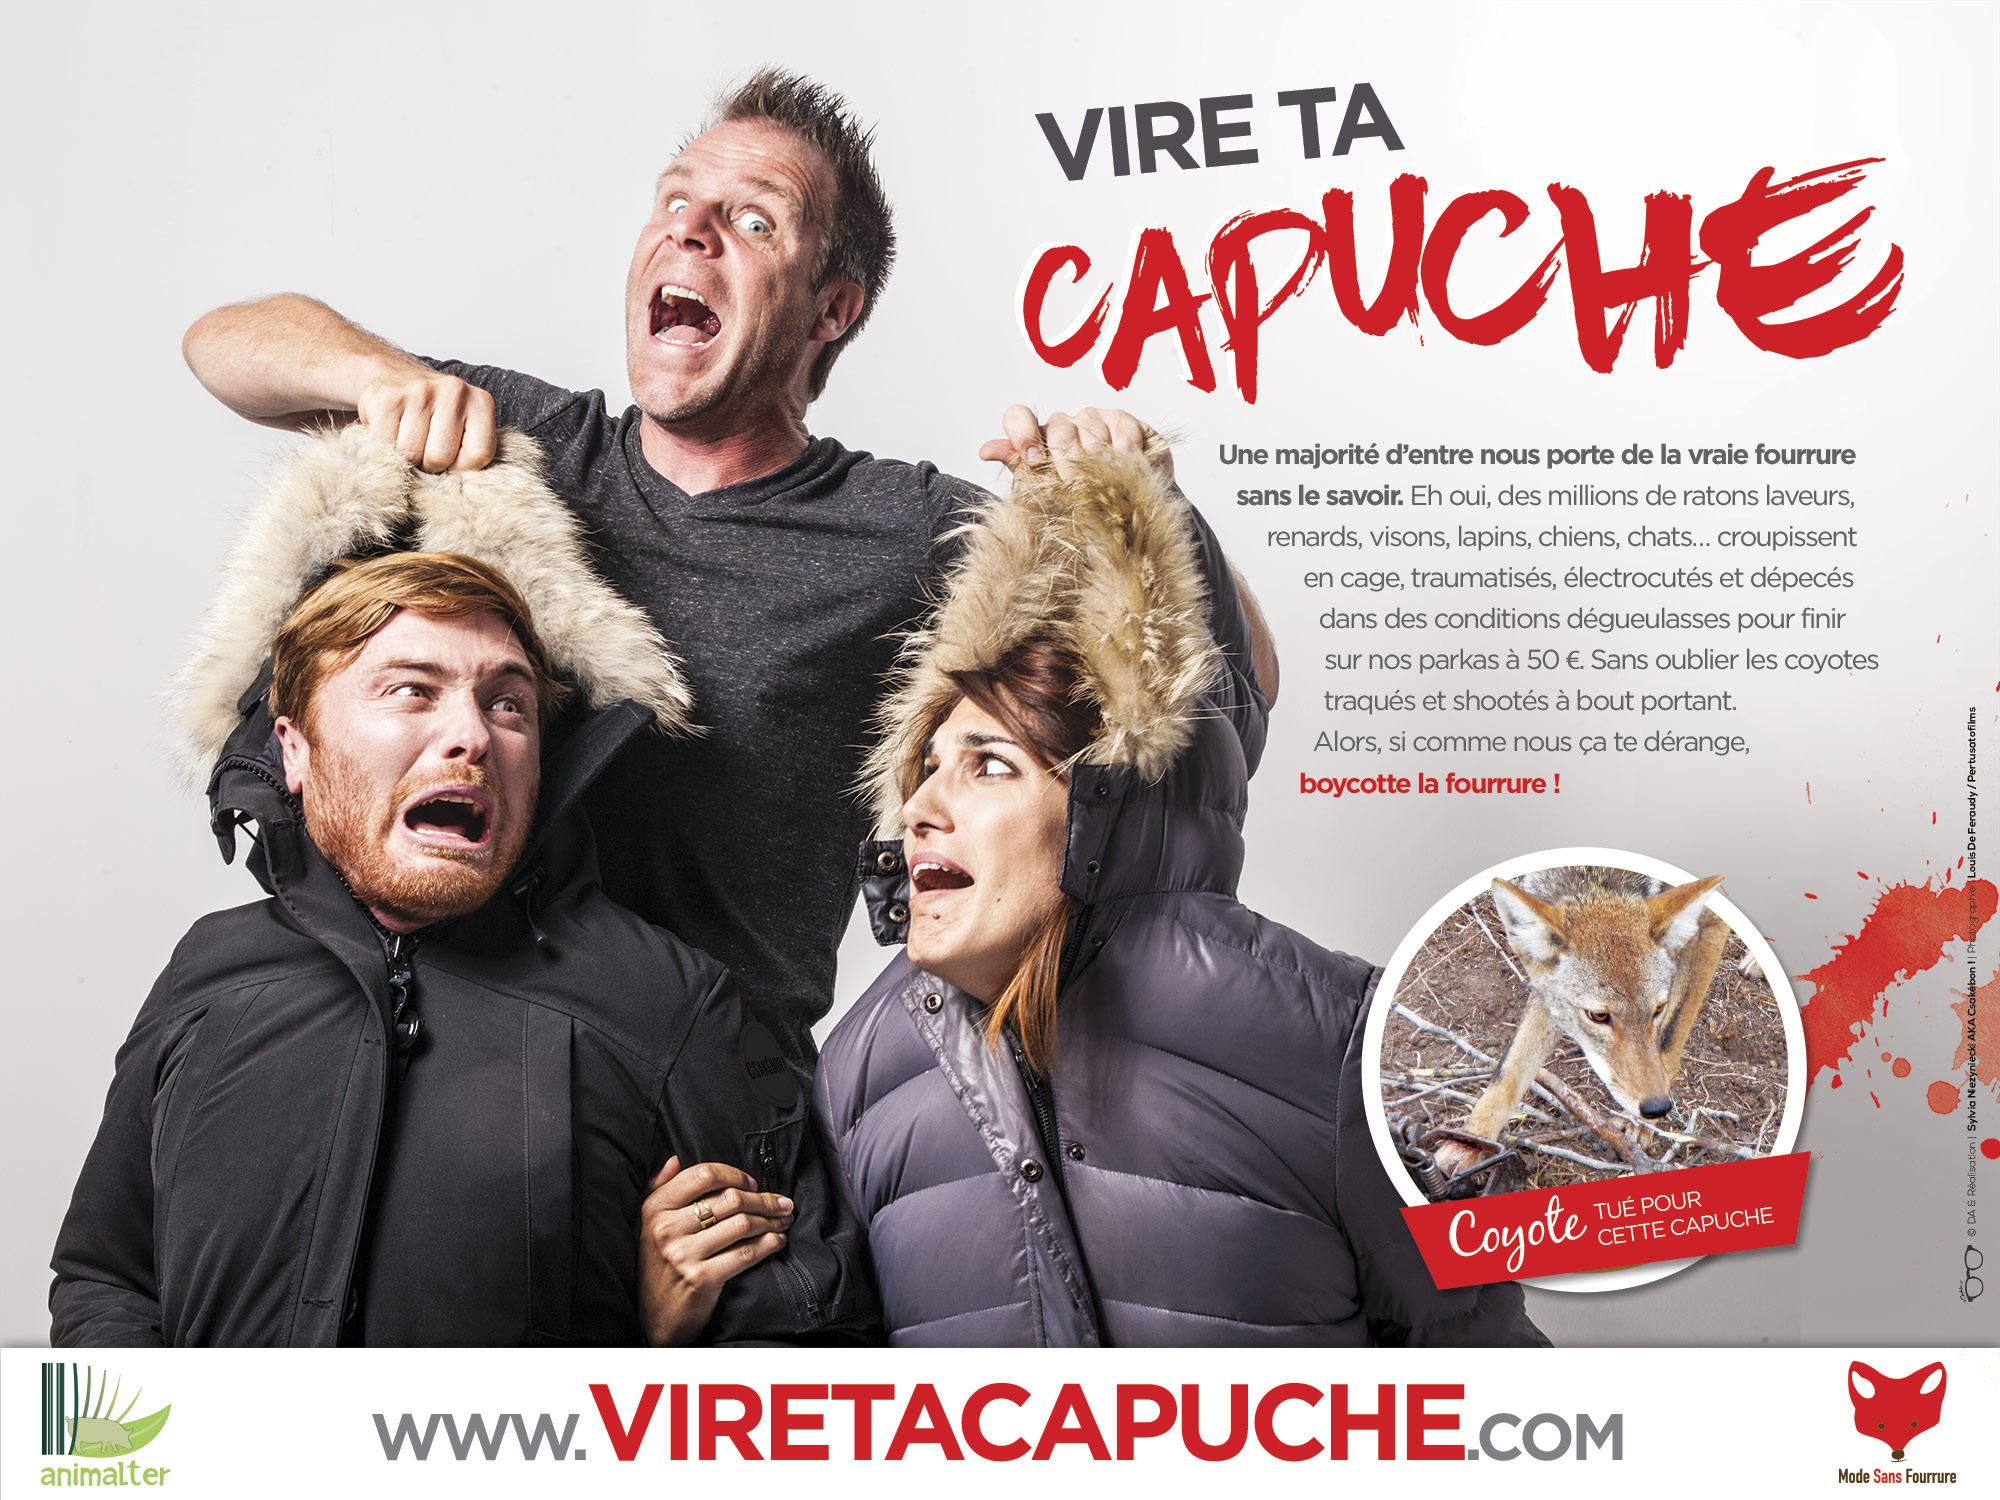 Csakébon - Vire ta capuche ! - All rights reserved